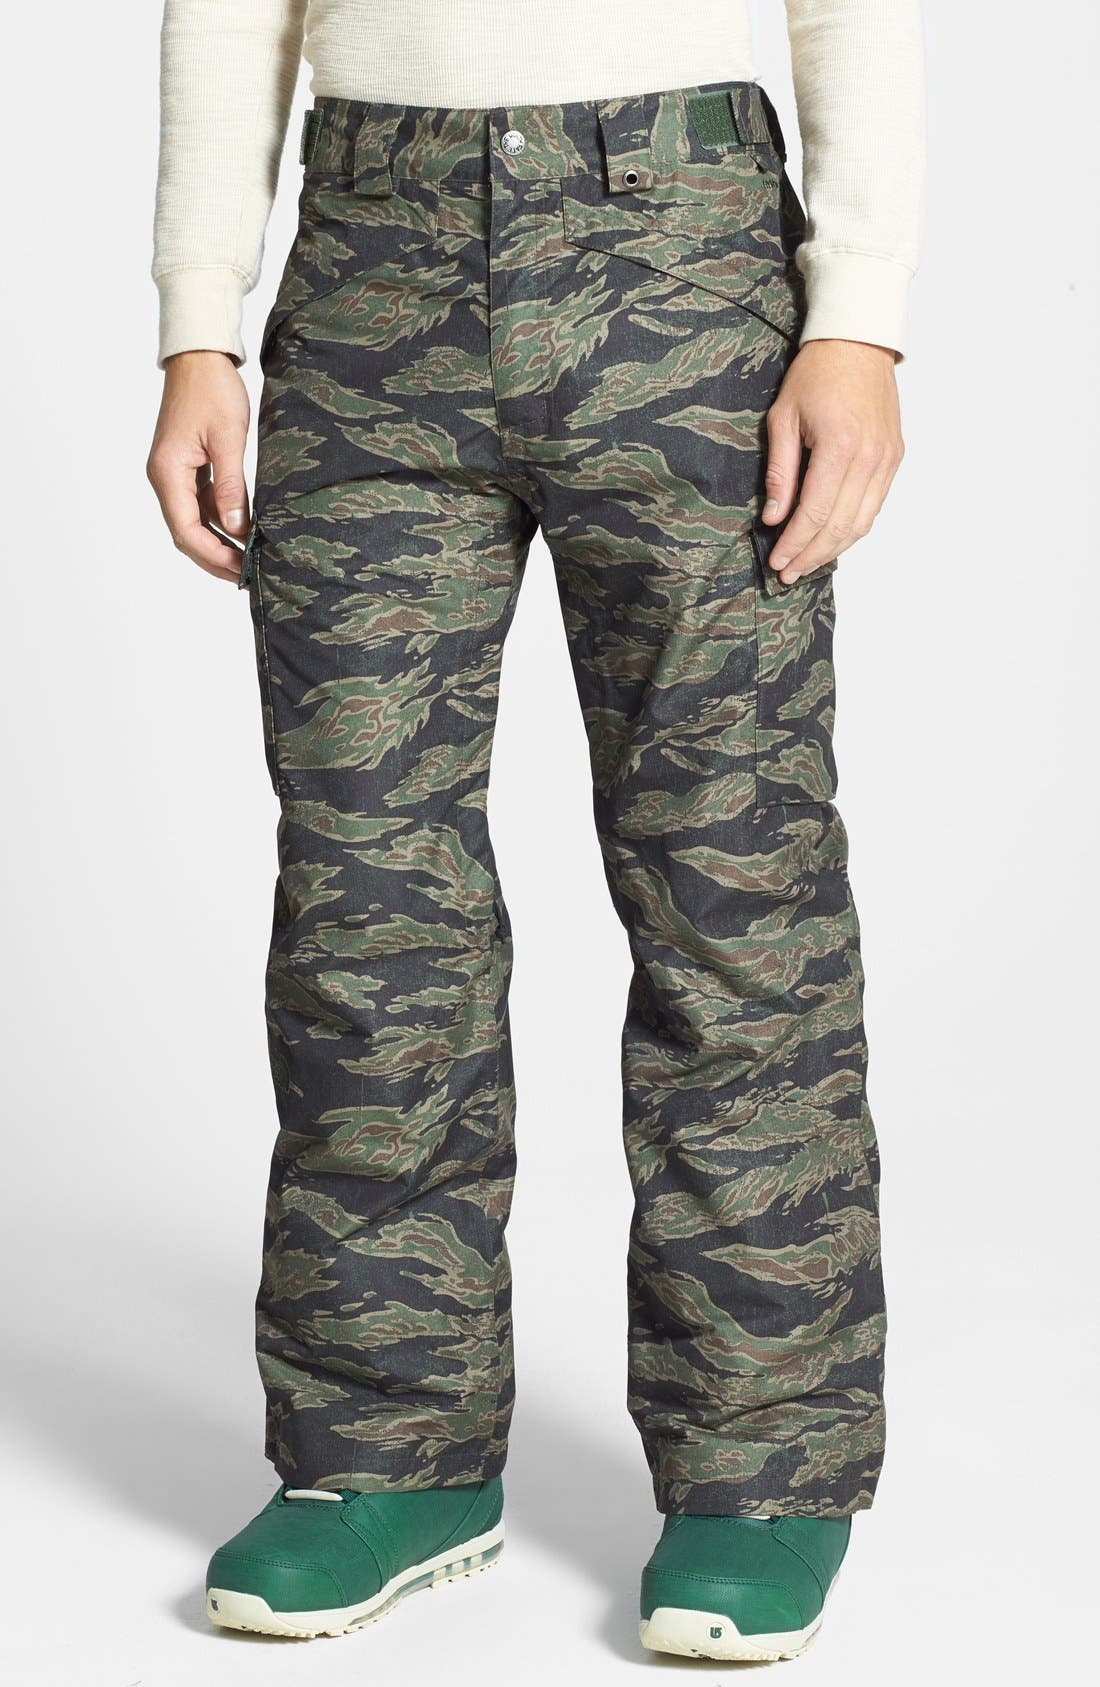 Main Image - The North Face 'Slasher' Cargo Ski Pants (Online Only)